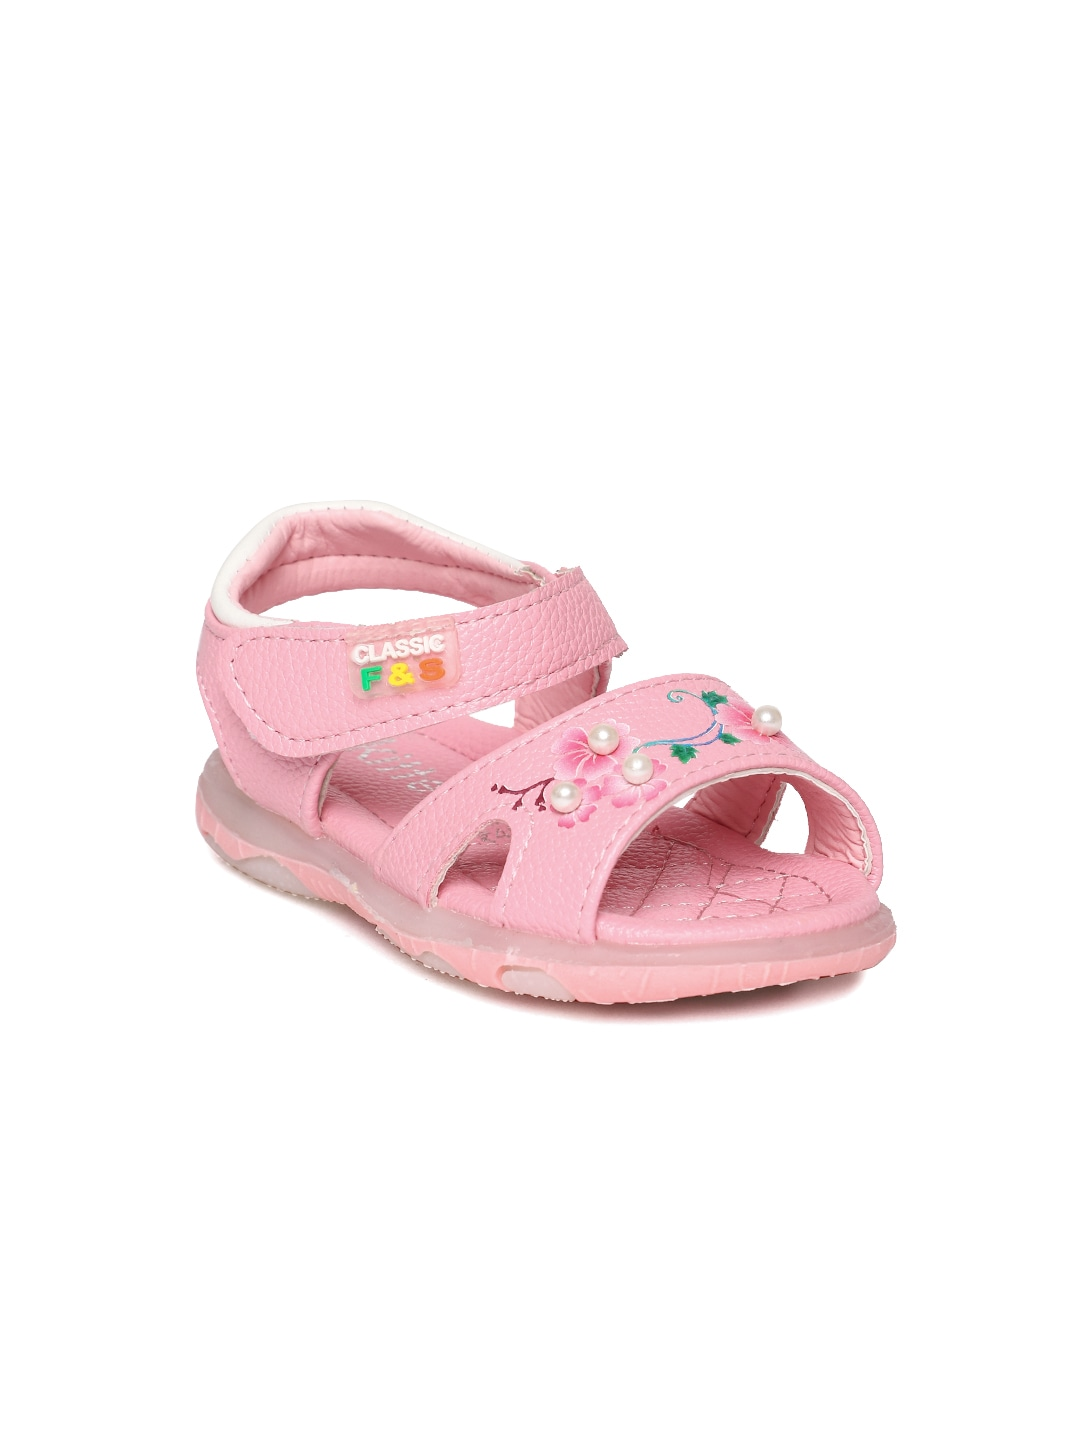 0019a58de22e Kids Footwear - Buy Footwear For Kids Online in India